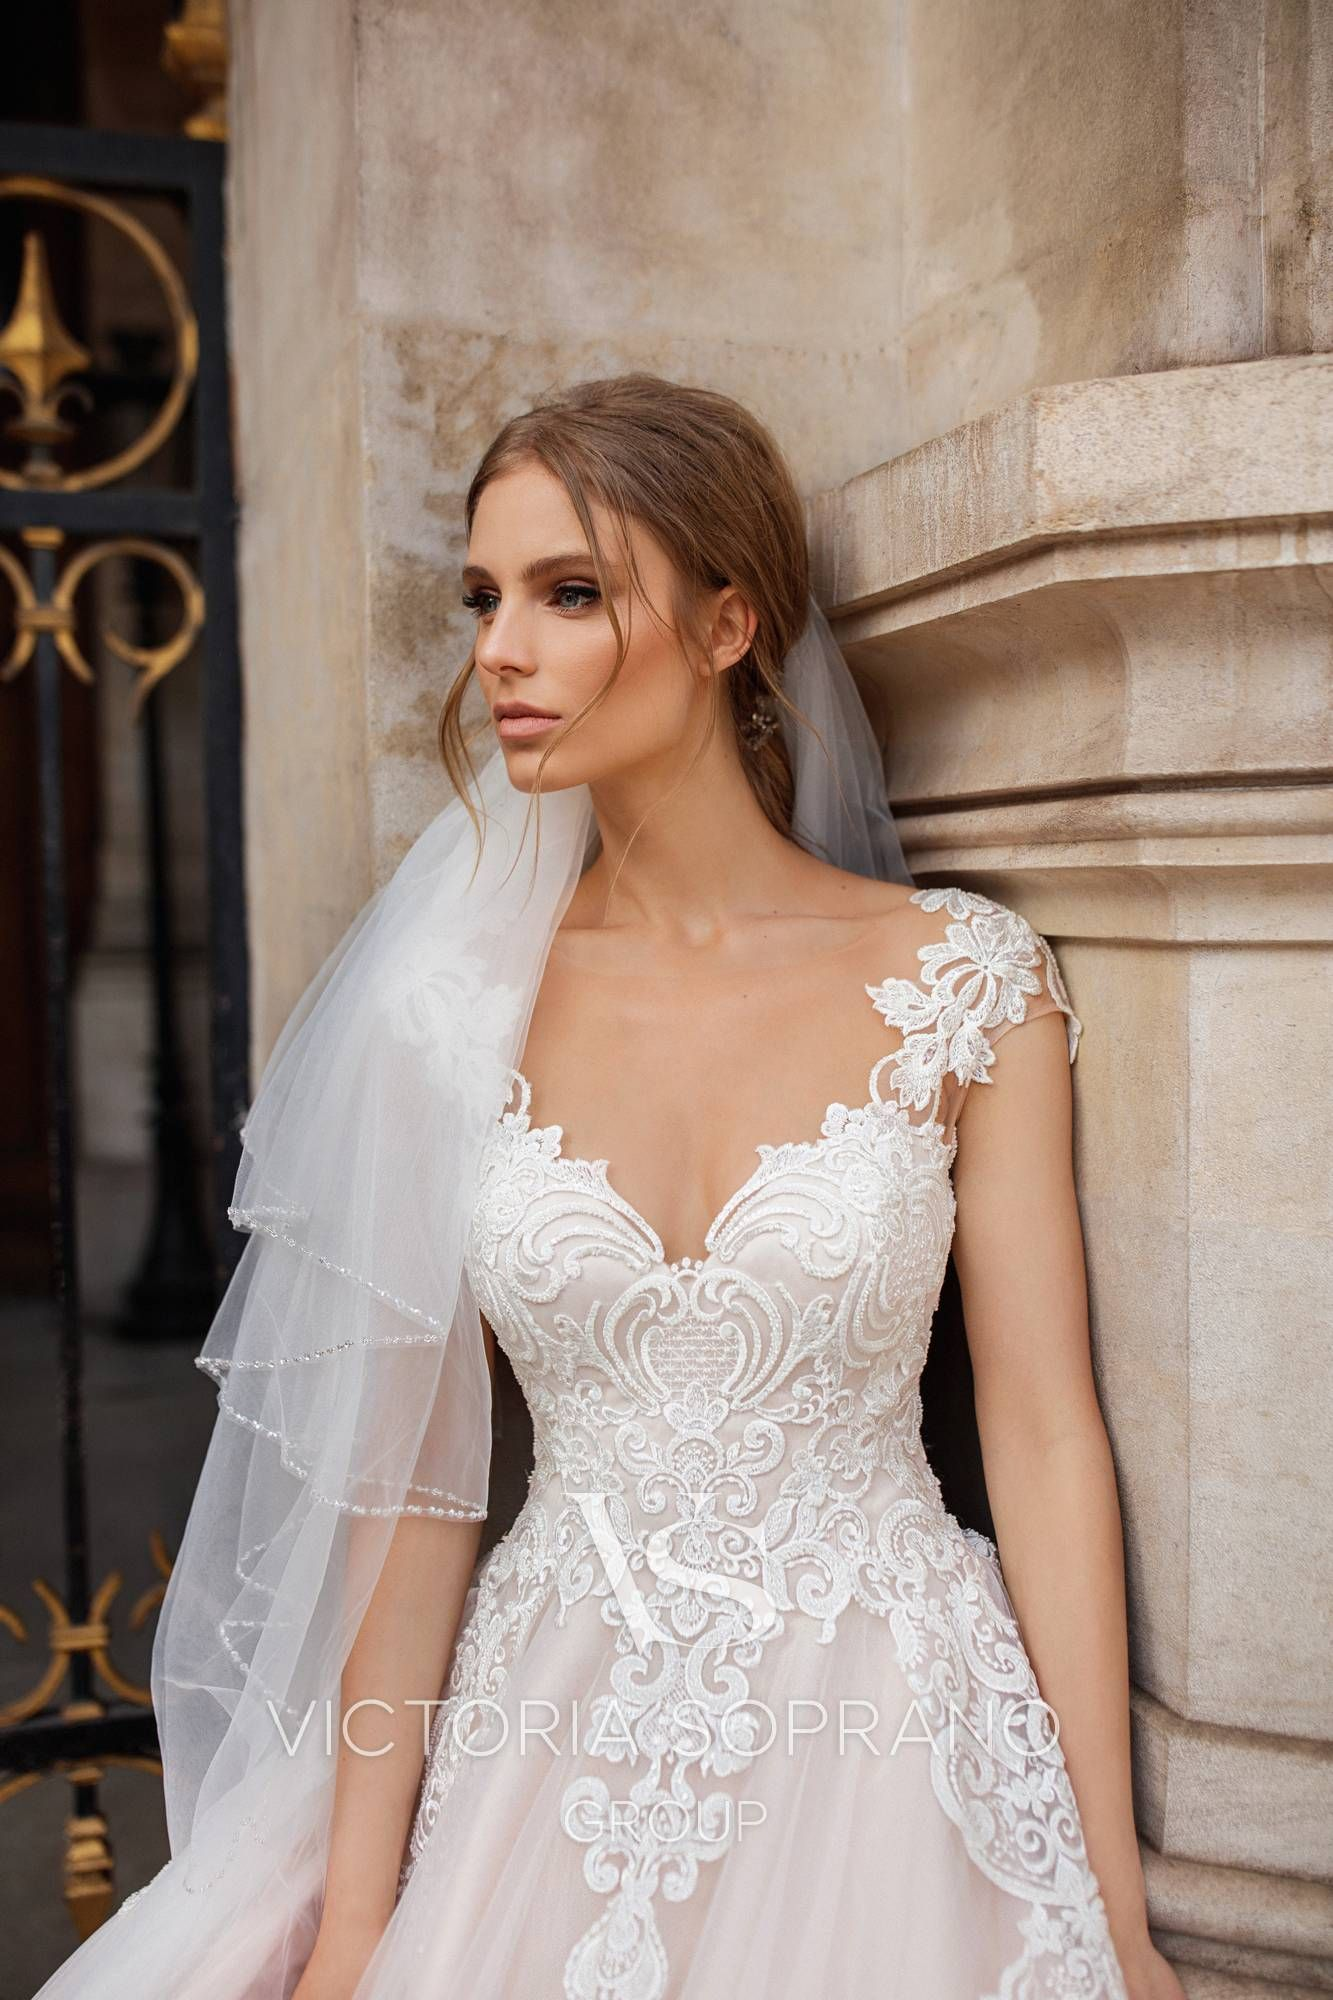 bc5cd1814607 Model Ivonna - Wedding dresses by Victoria Soprano Group Collection Love in  Paris  victoriasoprano  katherinejoyce  loveinparis   victoriasoprano official ...